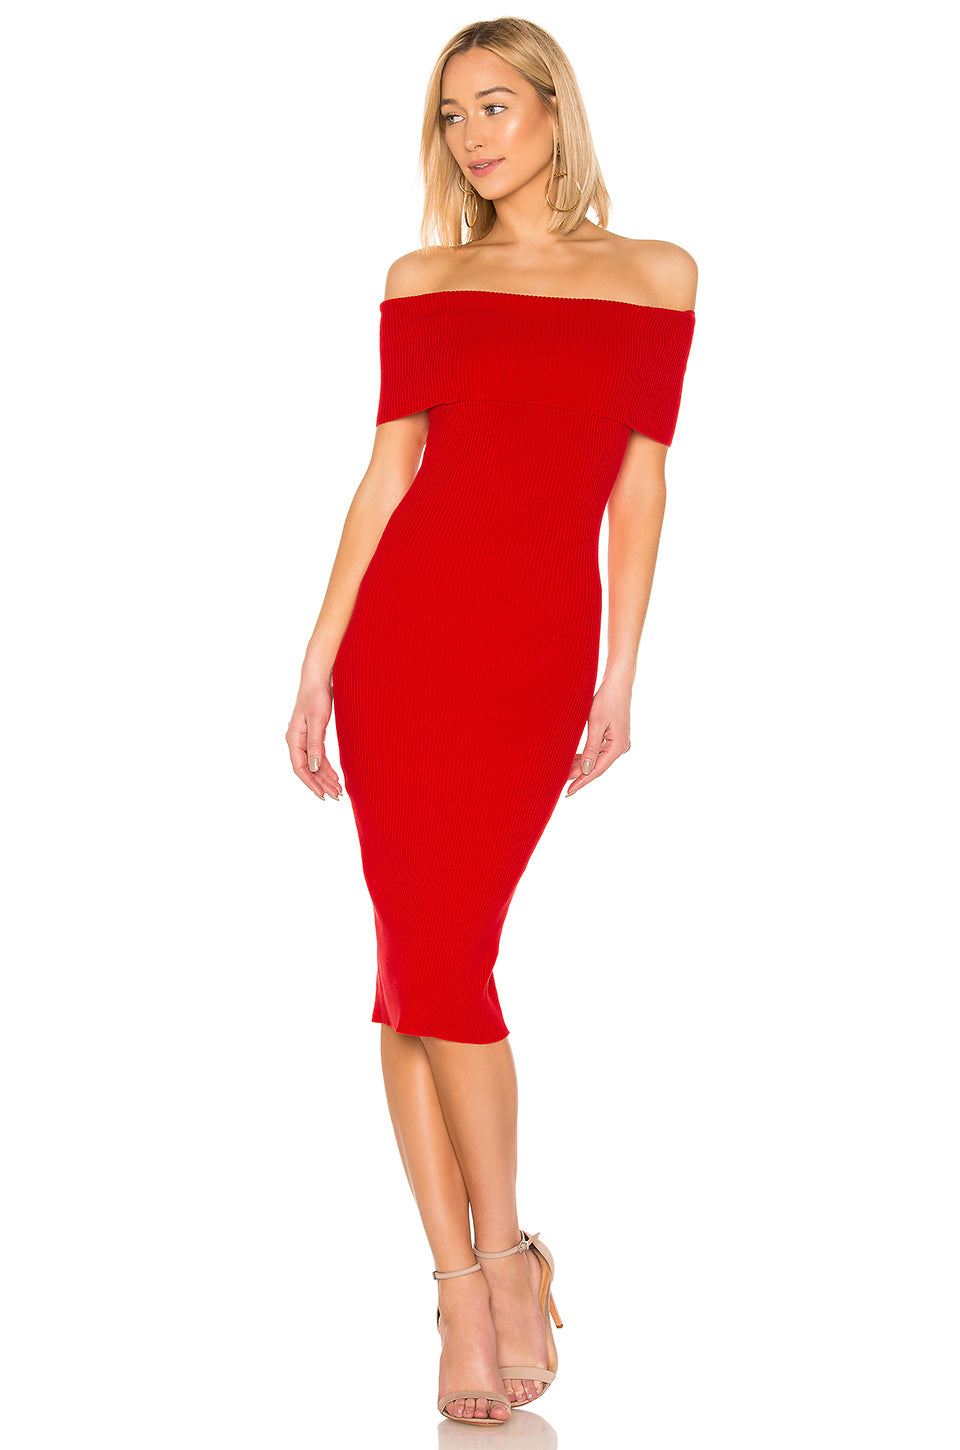 Lulu Midi Dress in Red